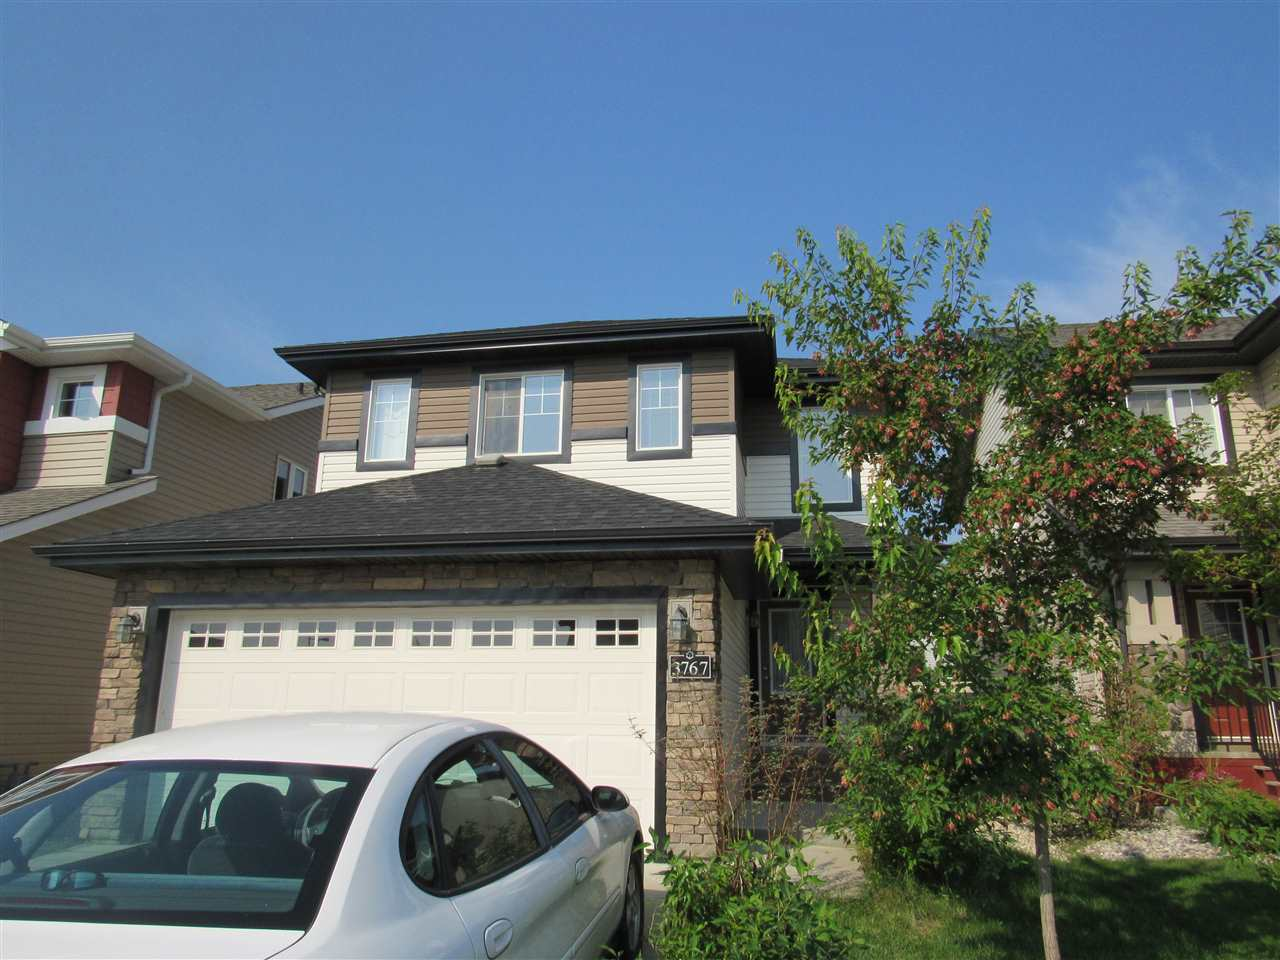 Main Photo: 3767 alexander Crescent SW in Edmonton: Zone 55 House for sale : MLS® # E4078241